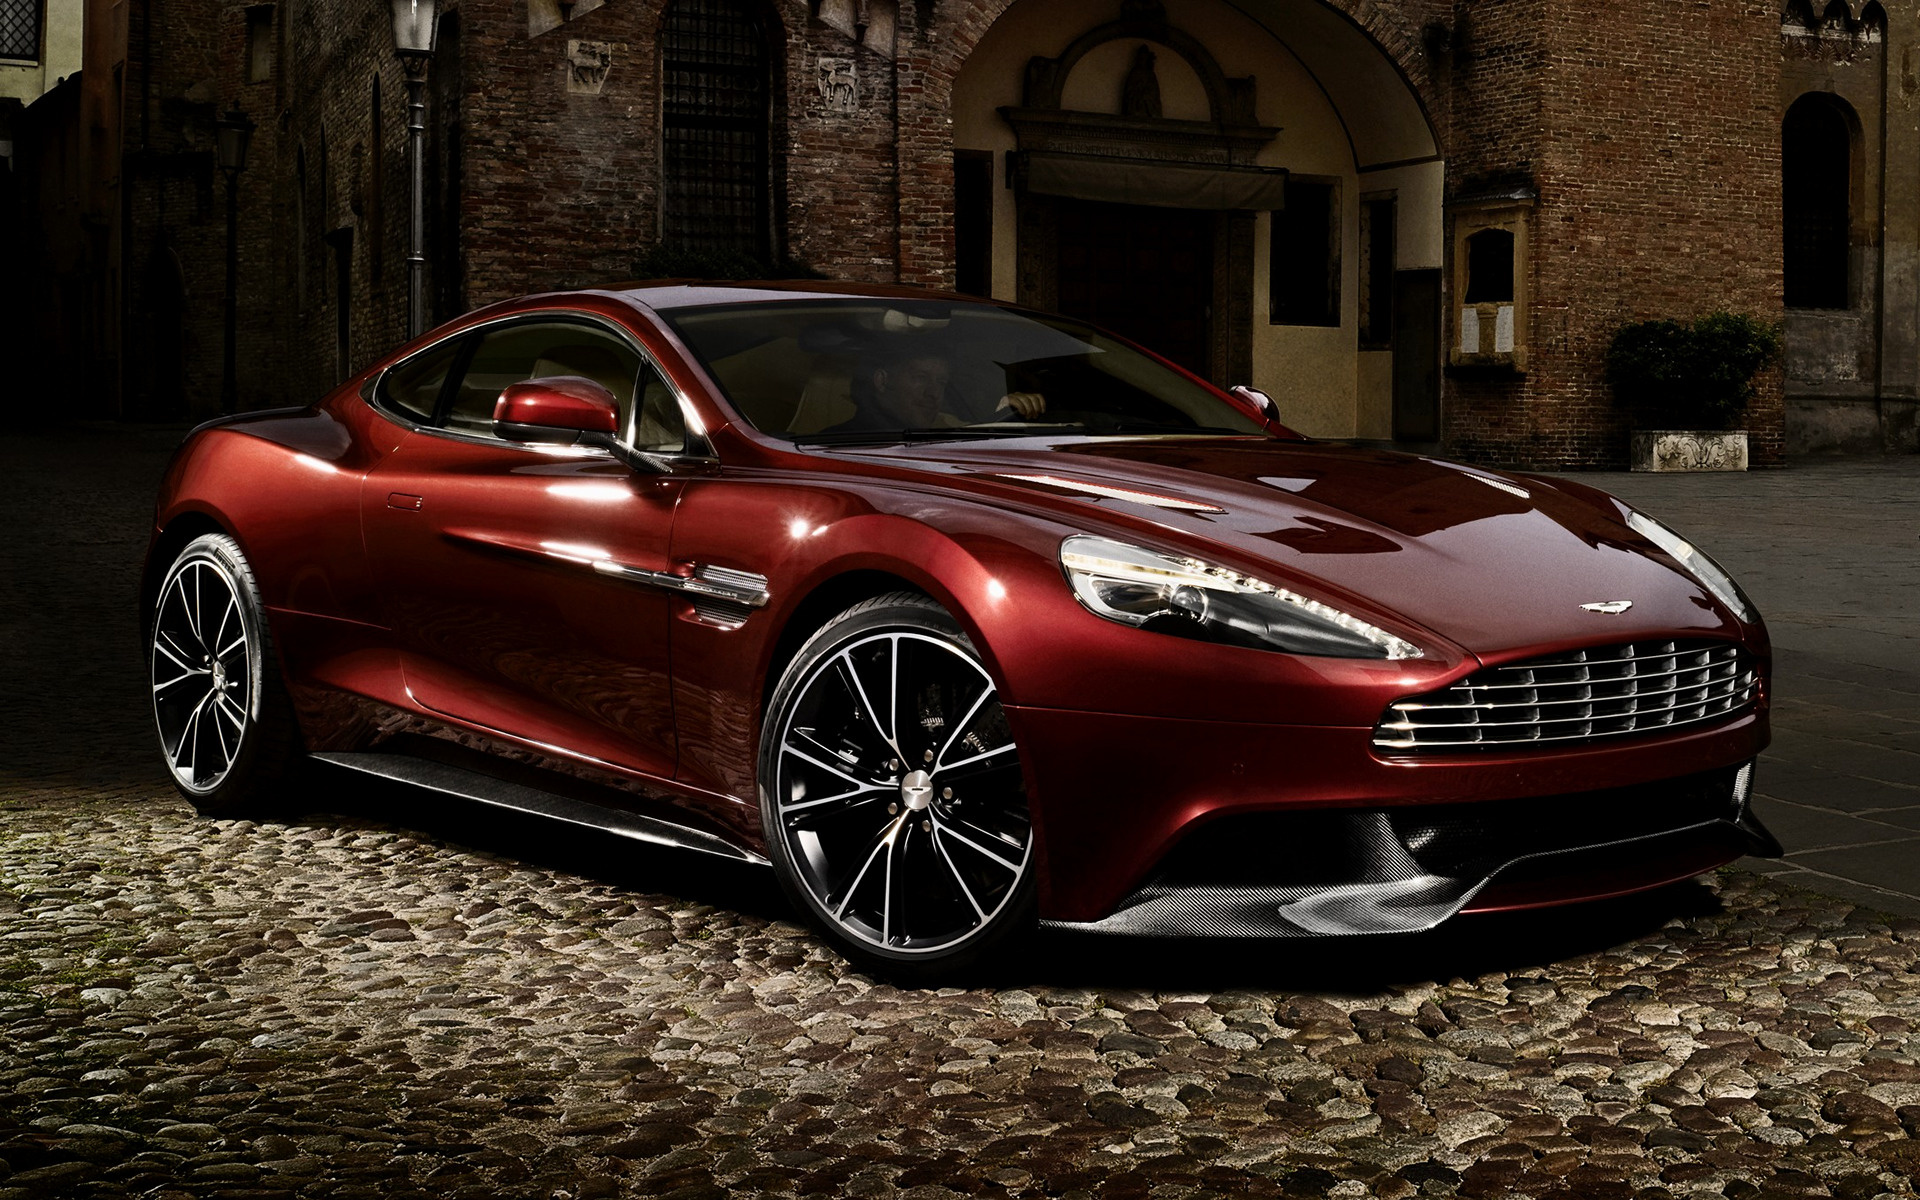 Volvo Wallpaper Hd Aston Martin Vanquish 2012 Wallpapers And Hd Images